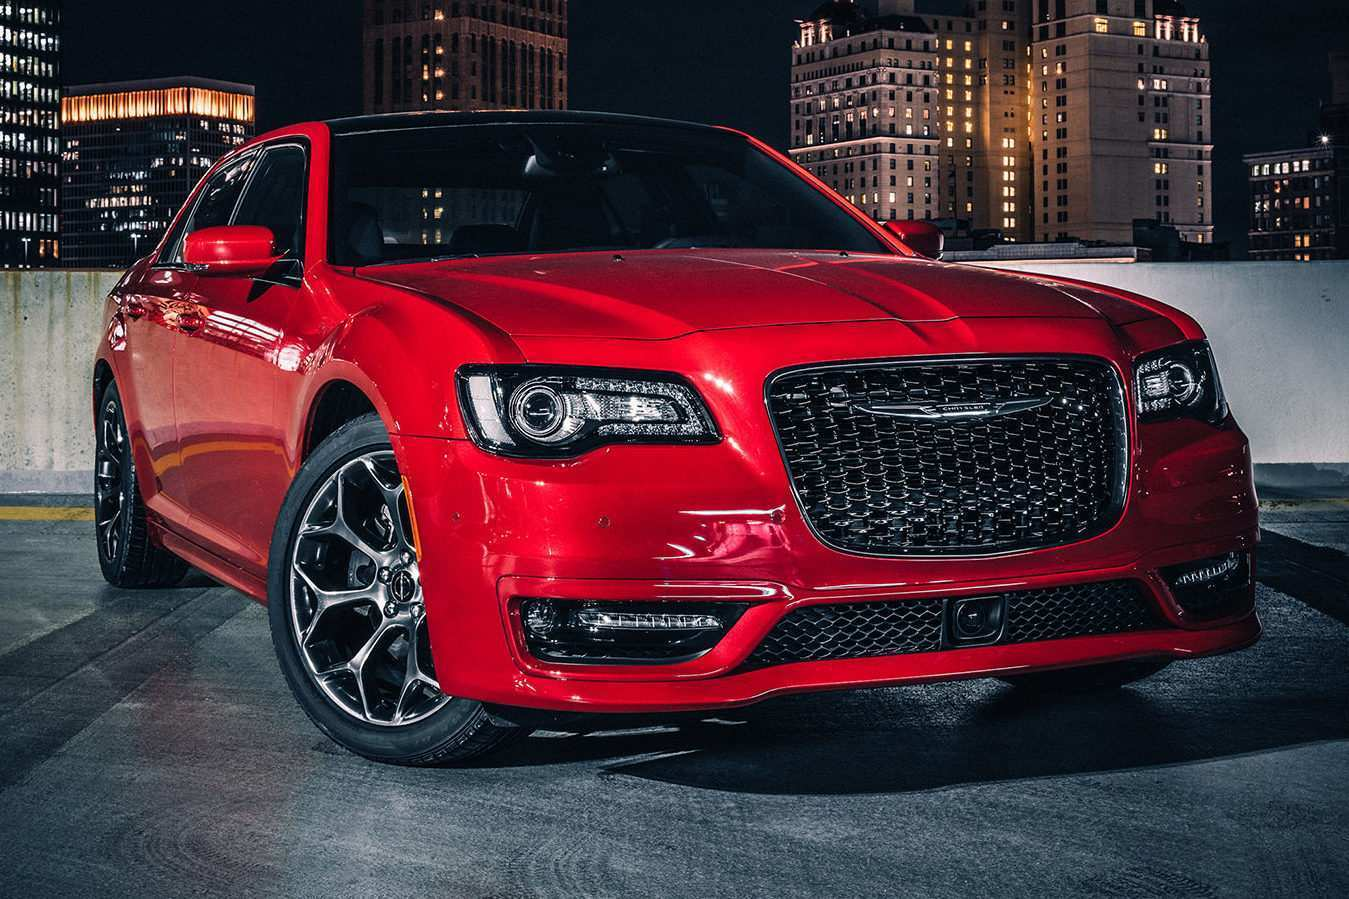 52 Great 2019 Chrysler Lineup First Drive by 2019 Chrysler Lineup